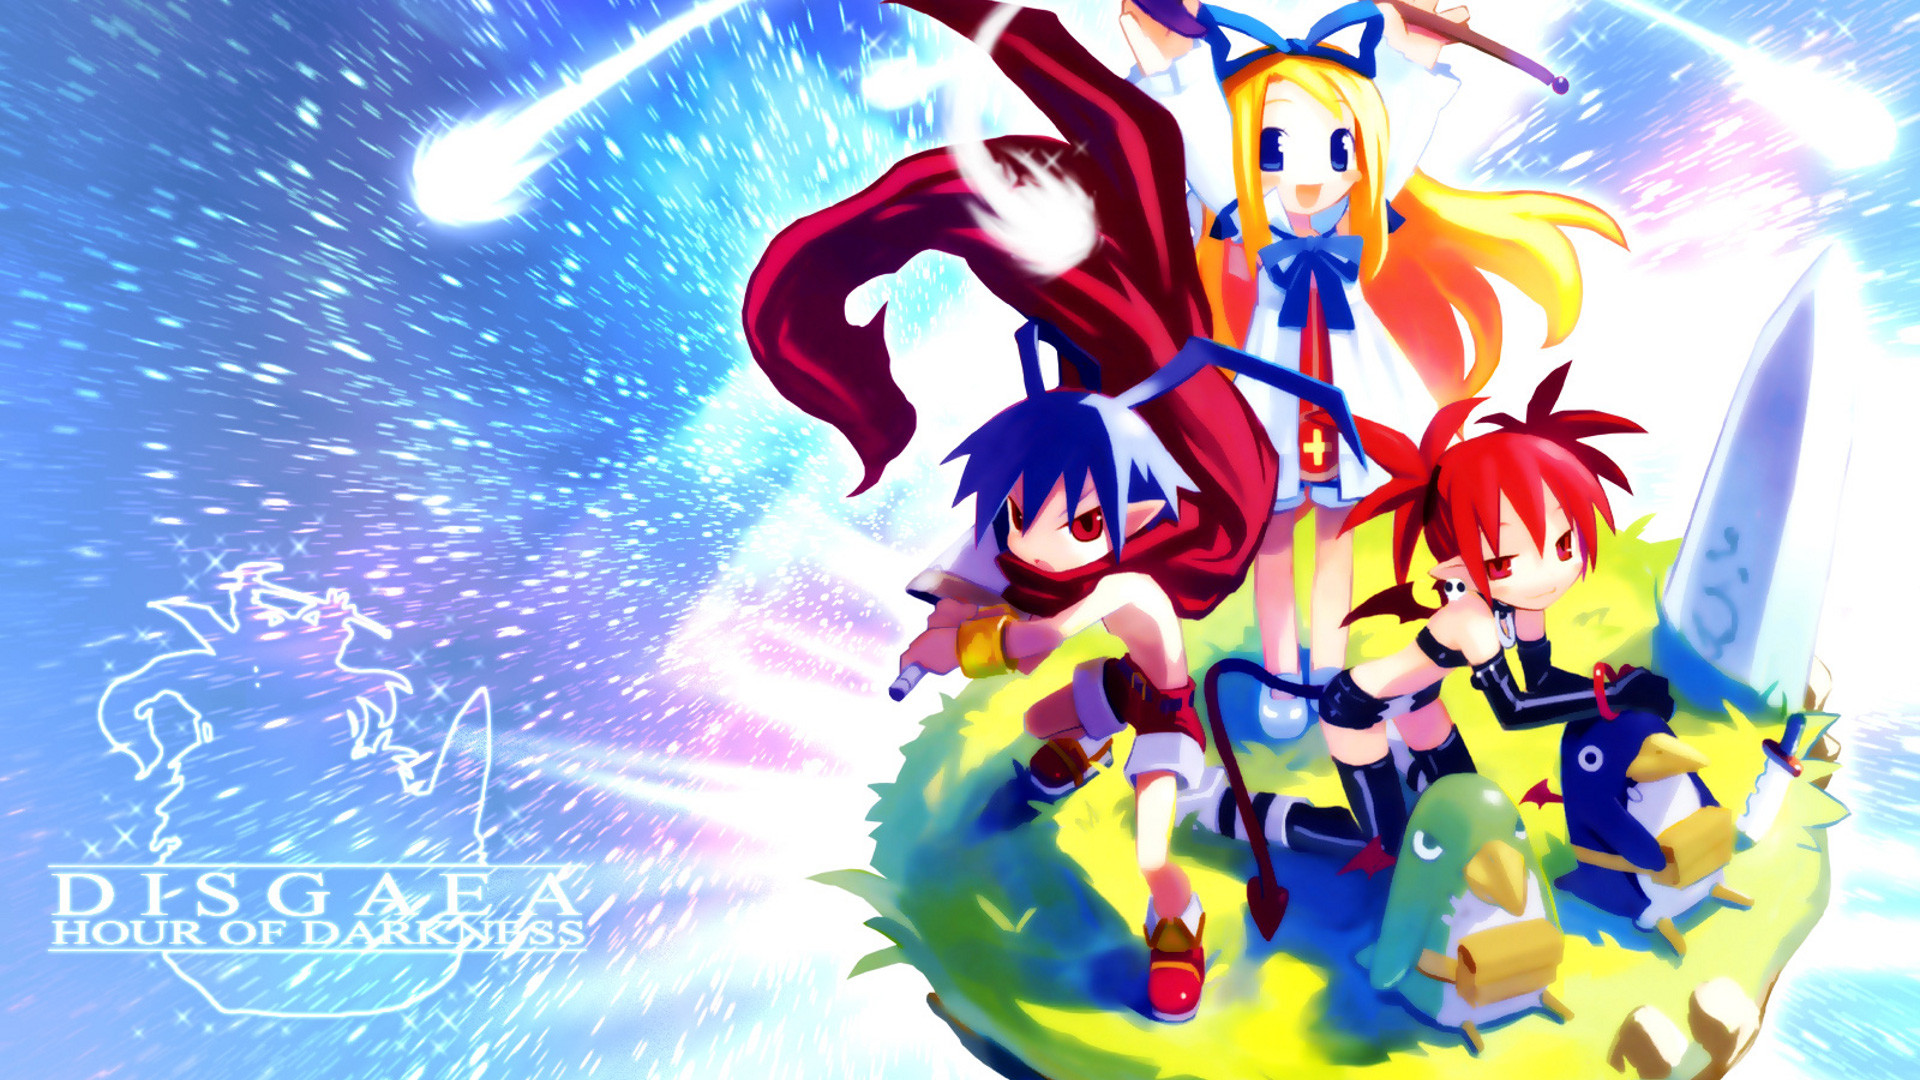 1920x1080 Throwback Thursday Review - Disgaea - Mithical Entertainment Mithical  Entertainment